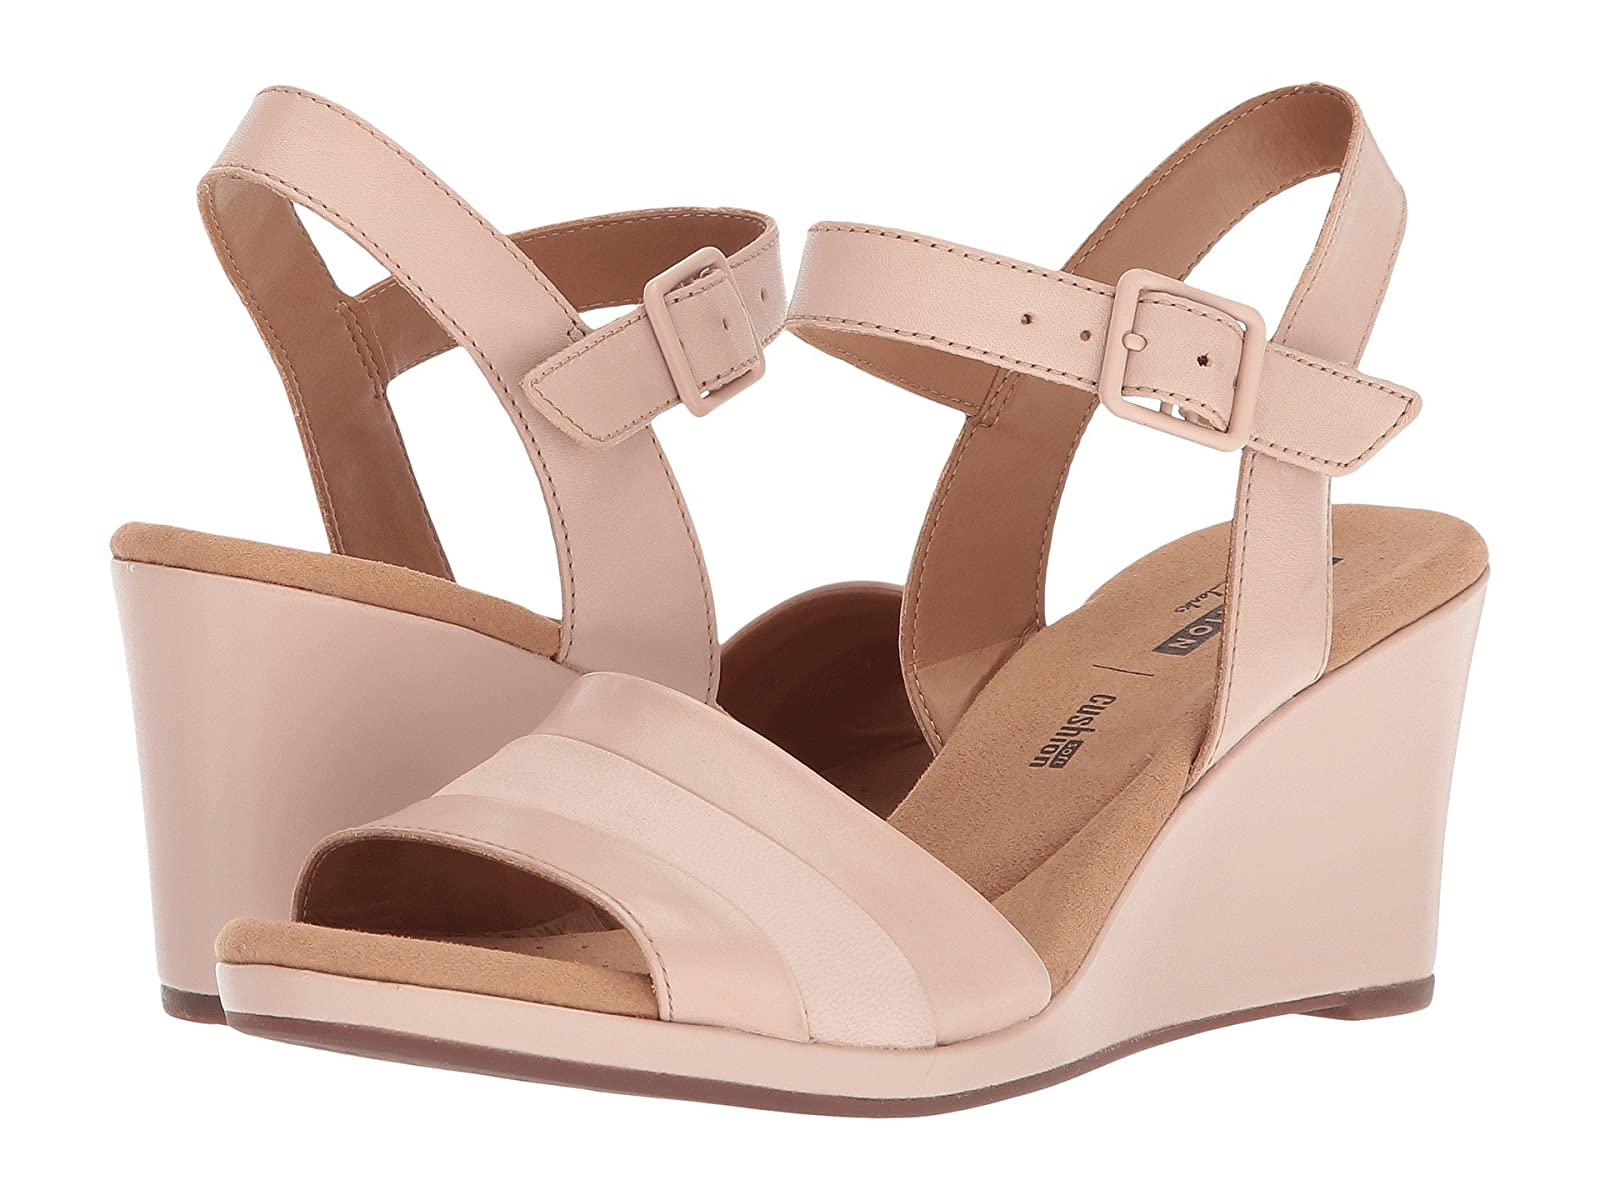 Clarks Lafley AlethaCheap and distinctive eye-catching shoes